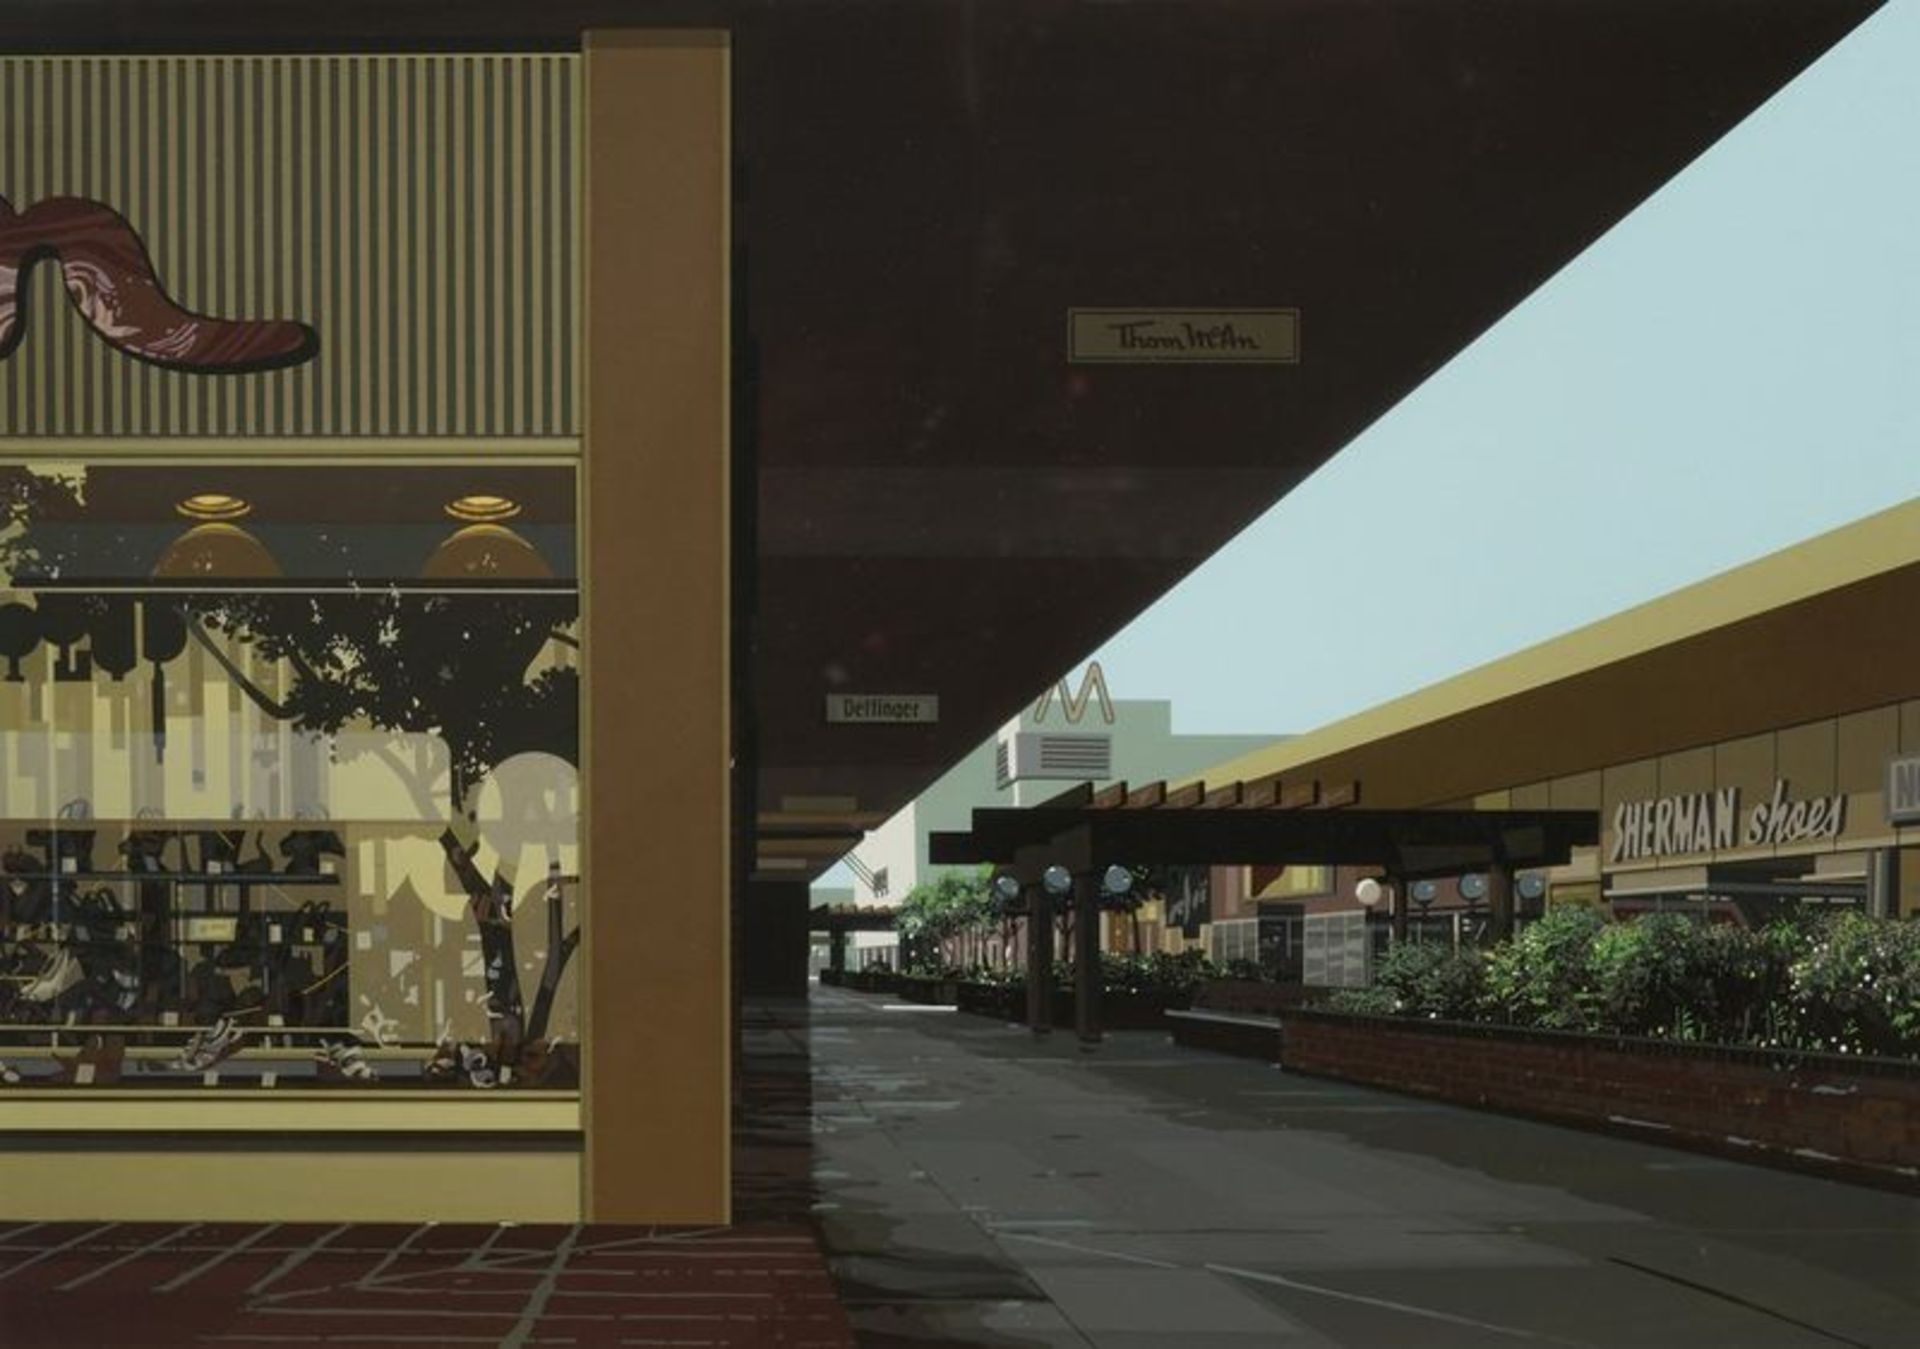 Los 559 - Richard Estes (1932) Urban Landscape III, 1981 5 screenprints, Urban Lanscape III, [...]